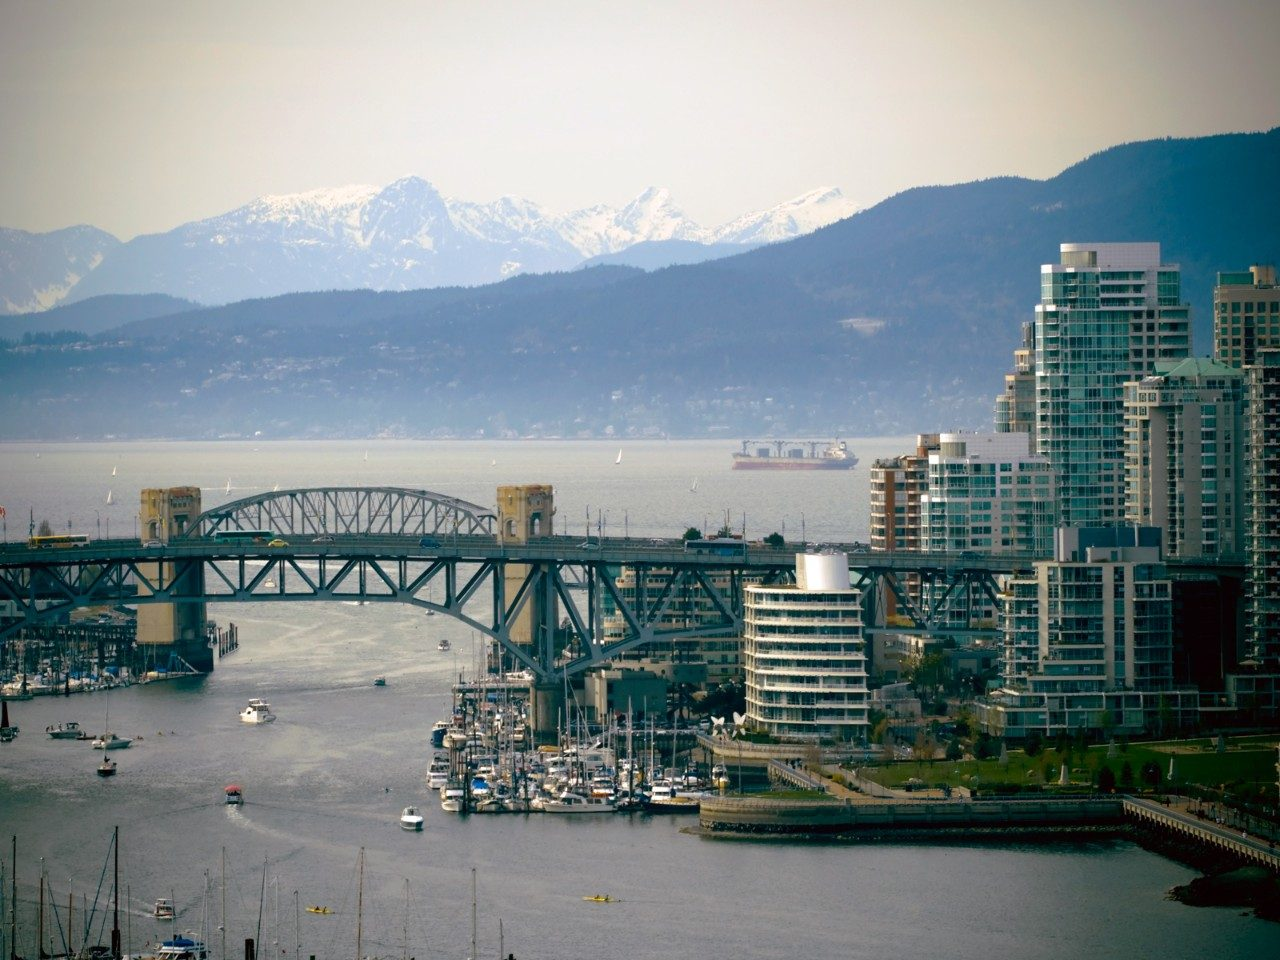 vancouver-harbour-tour-things-to-do-vancouver-guide-thinkstock.jpg